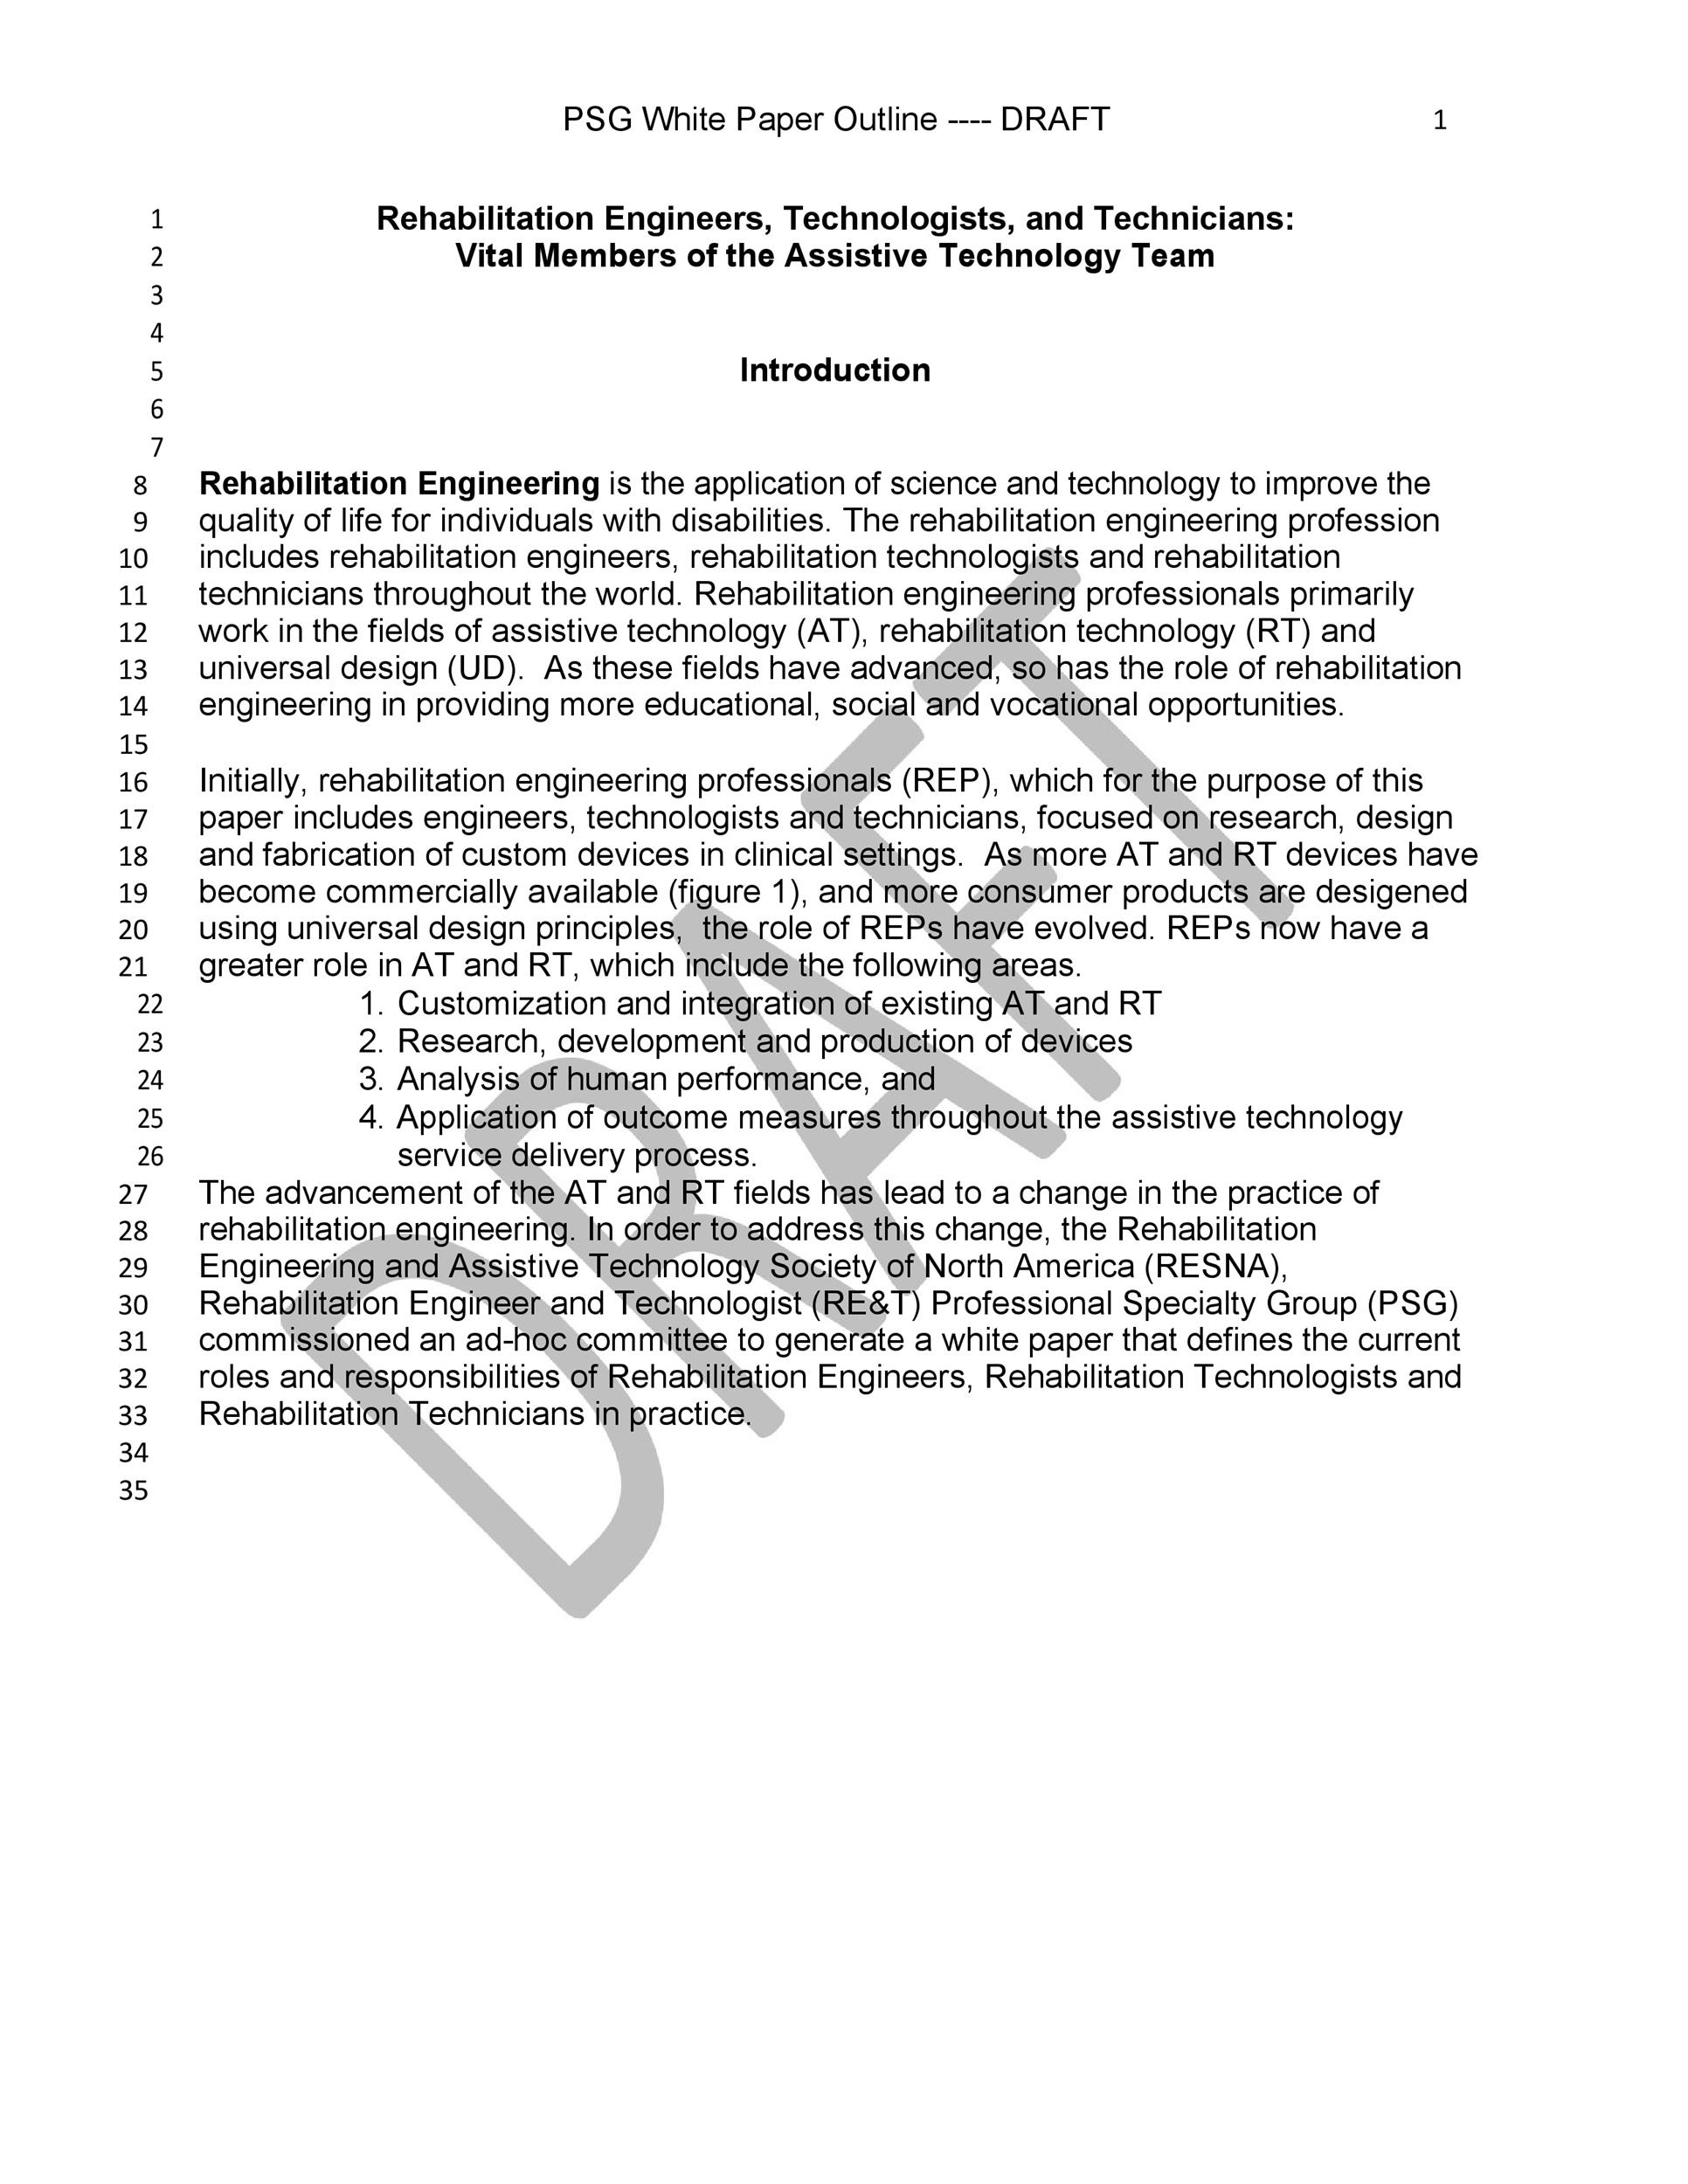 Writing white paper guidelines